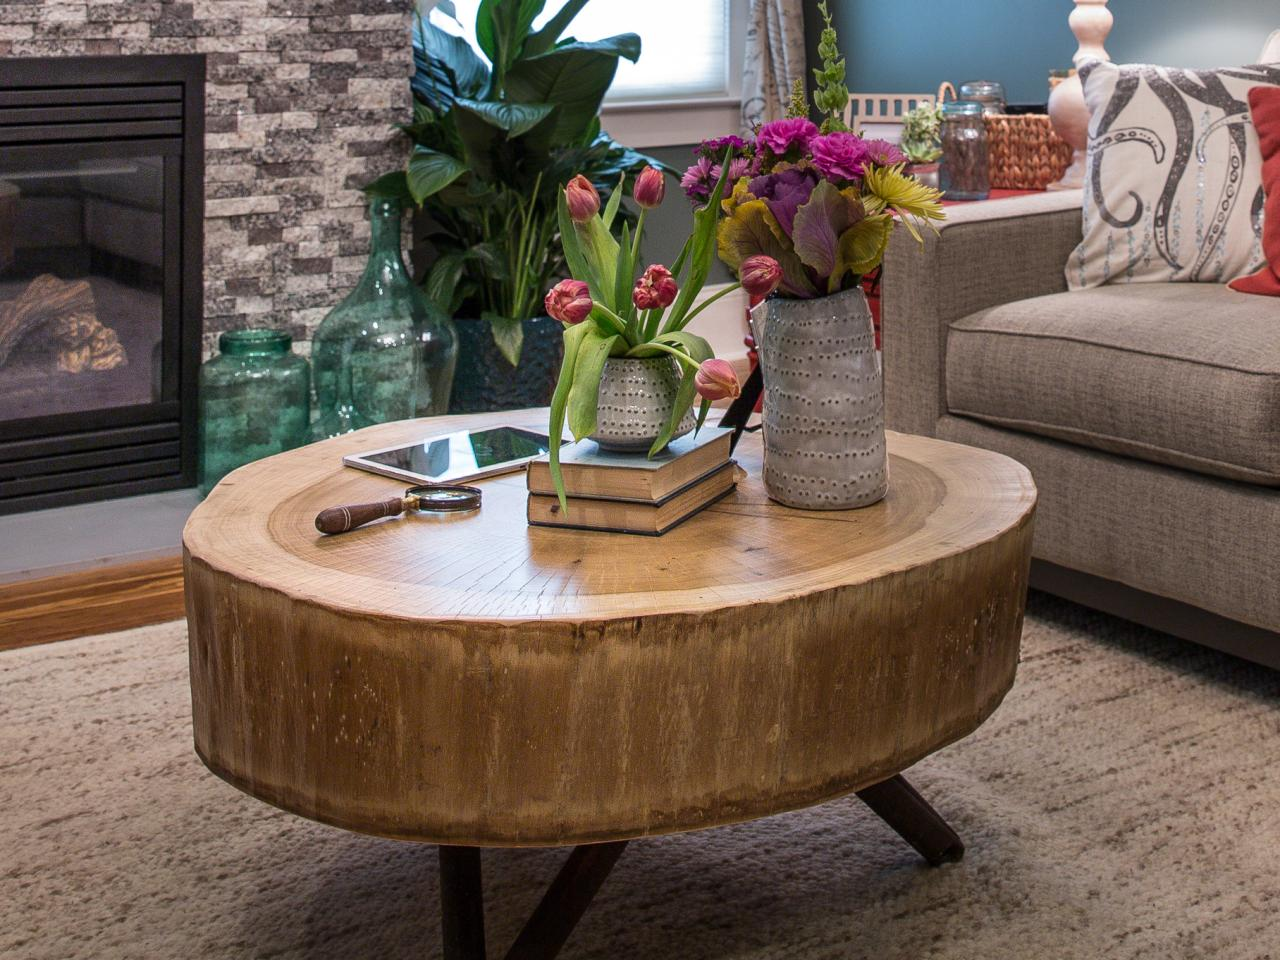 How To Build A Stump Coffee Table Tos Diy